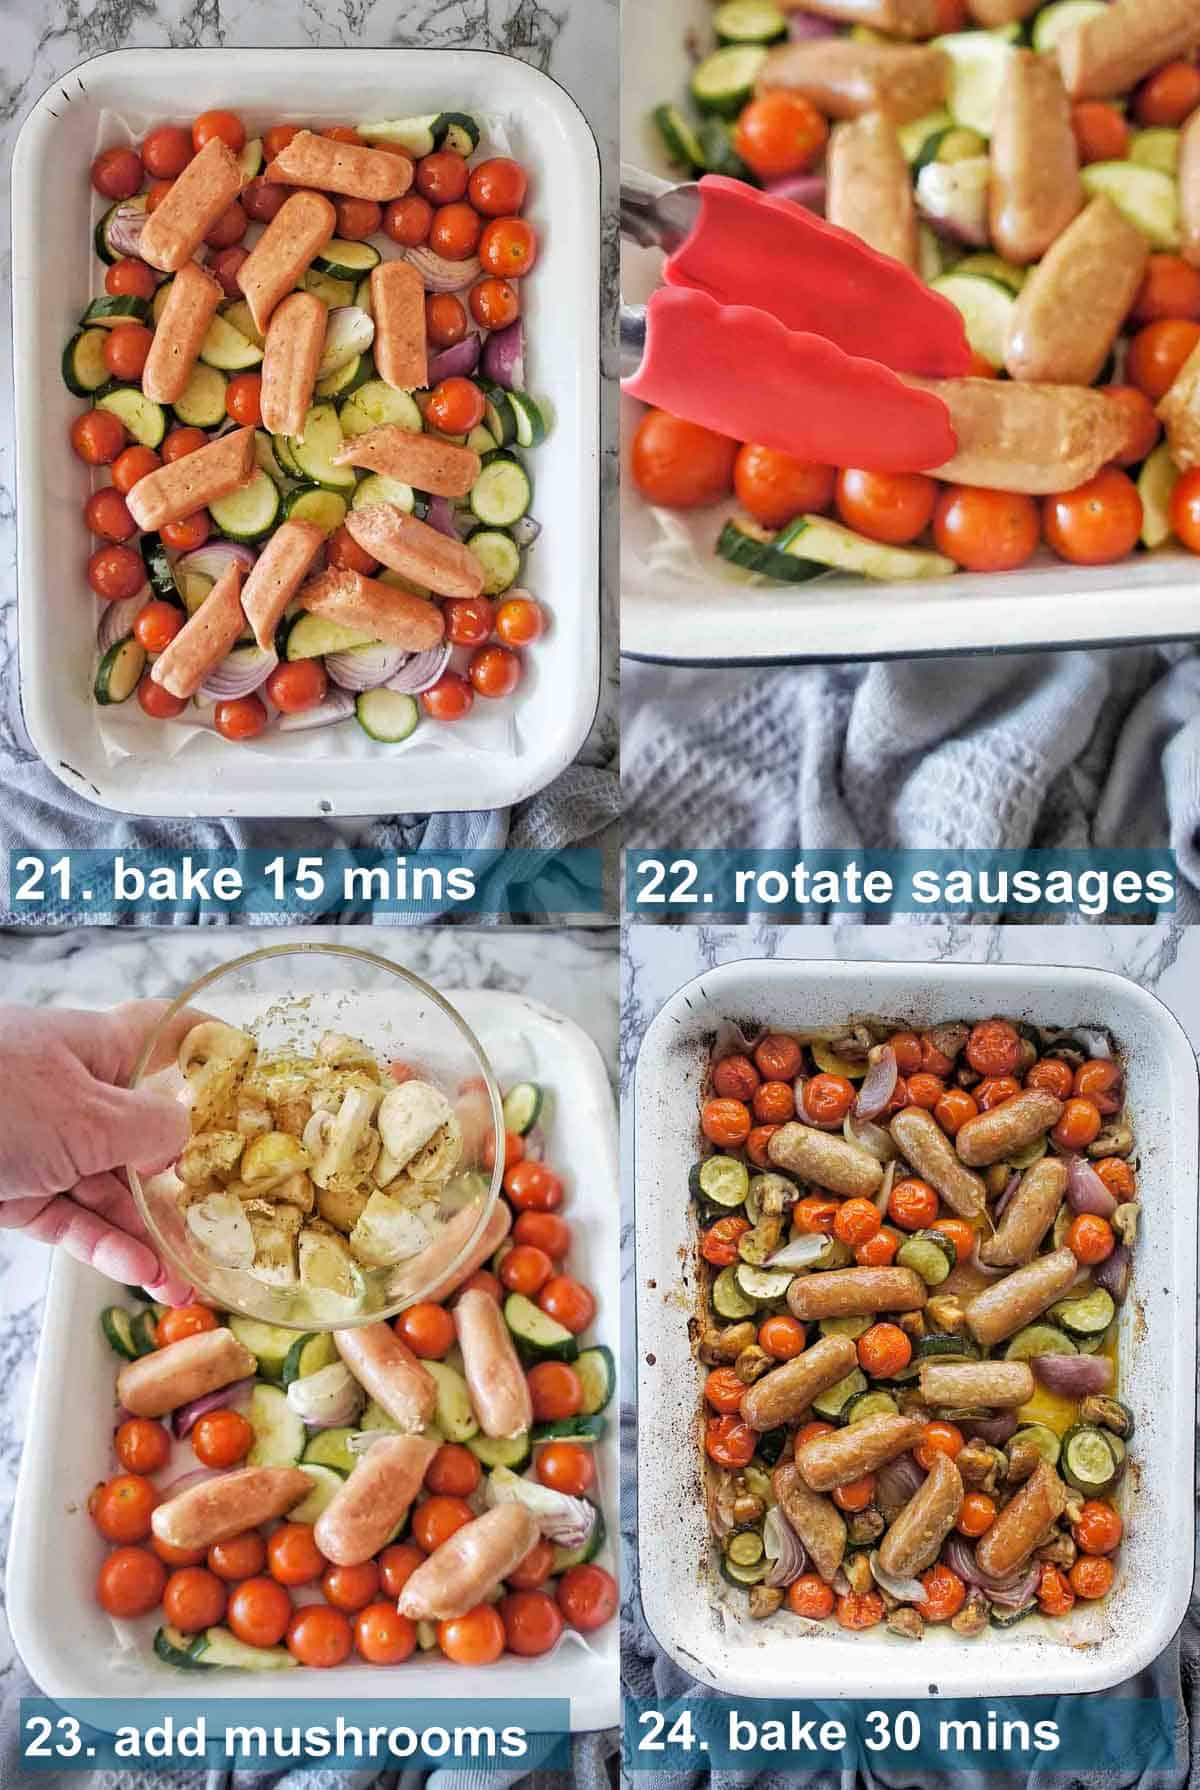 Sausage Tray Bake Method 21 to 24 with text labels